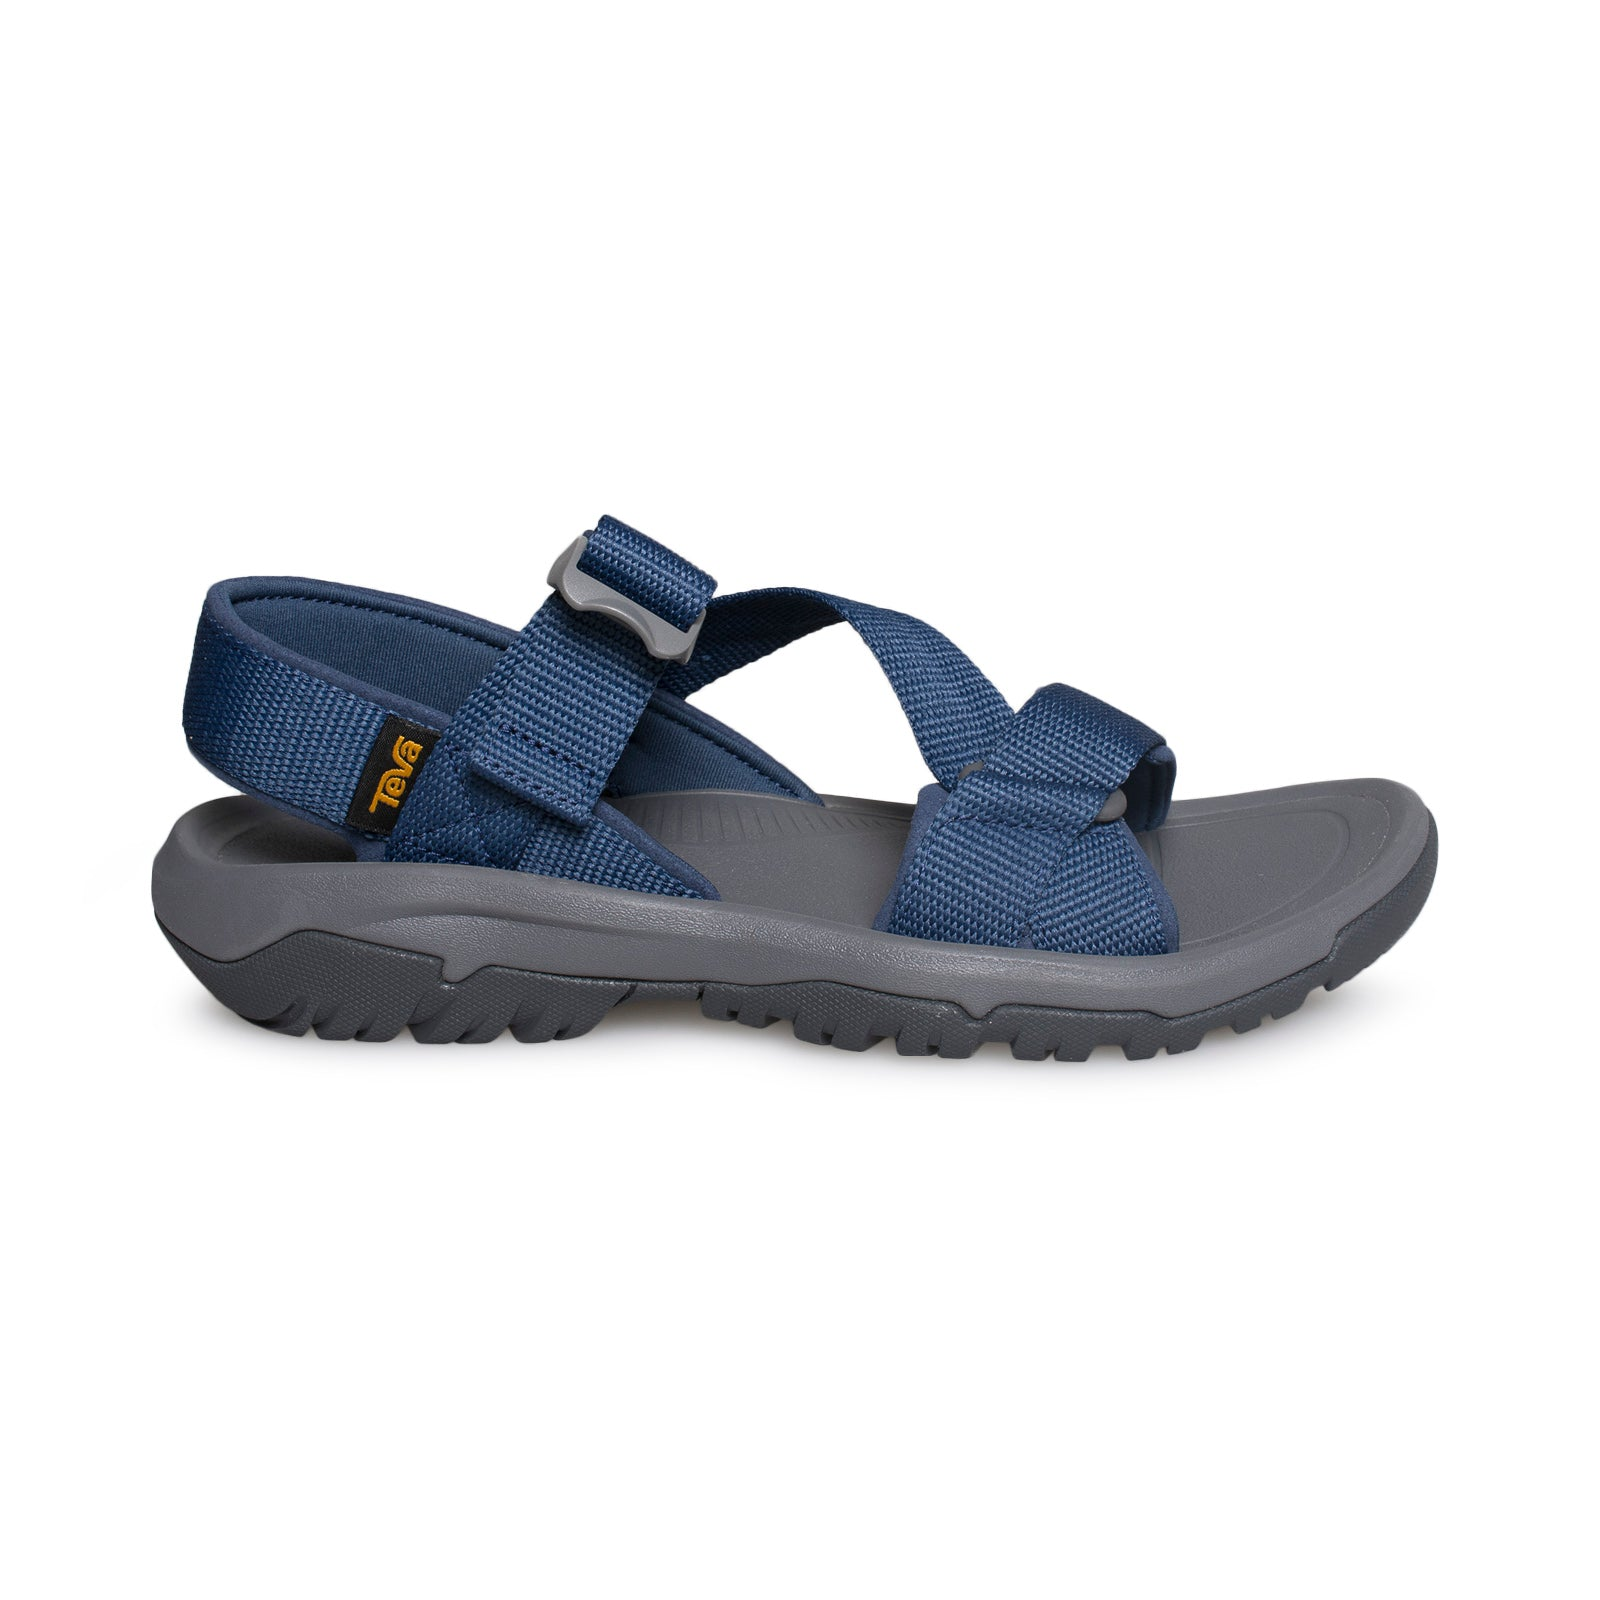 93d8abf6a675 Teva Hurricane XLT 2 Cross Strap Insignia Blue Sandals - Women s